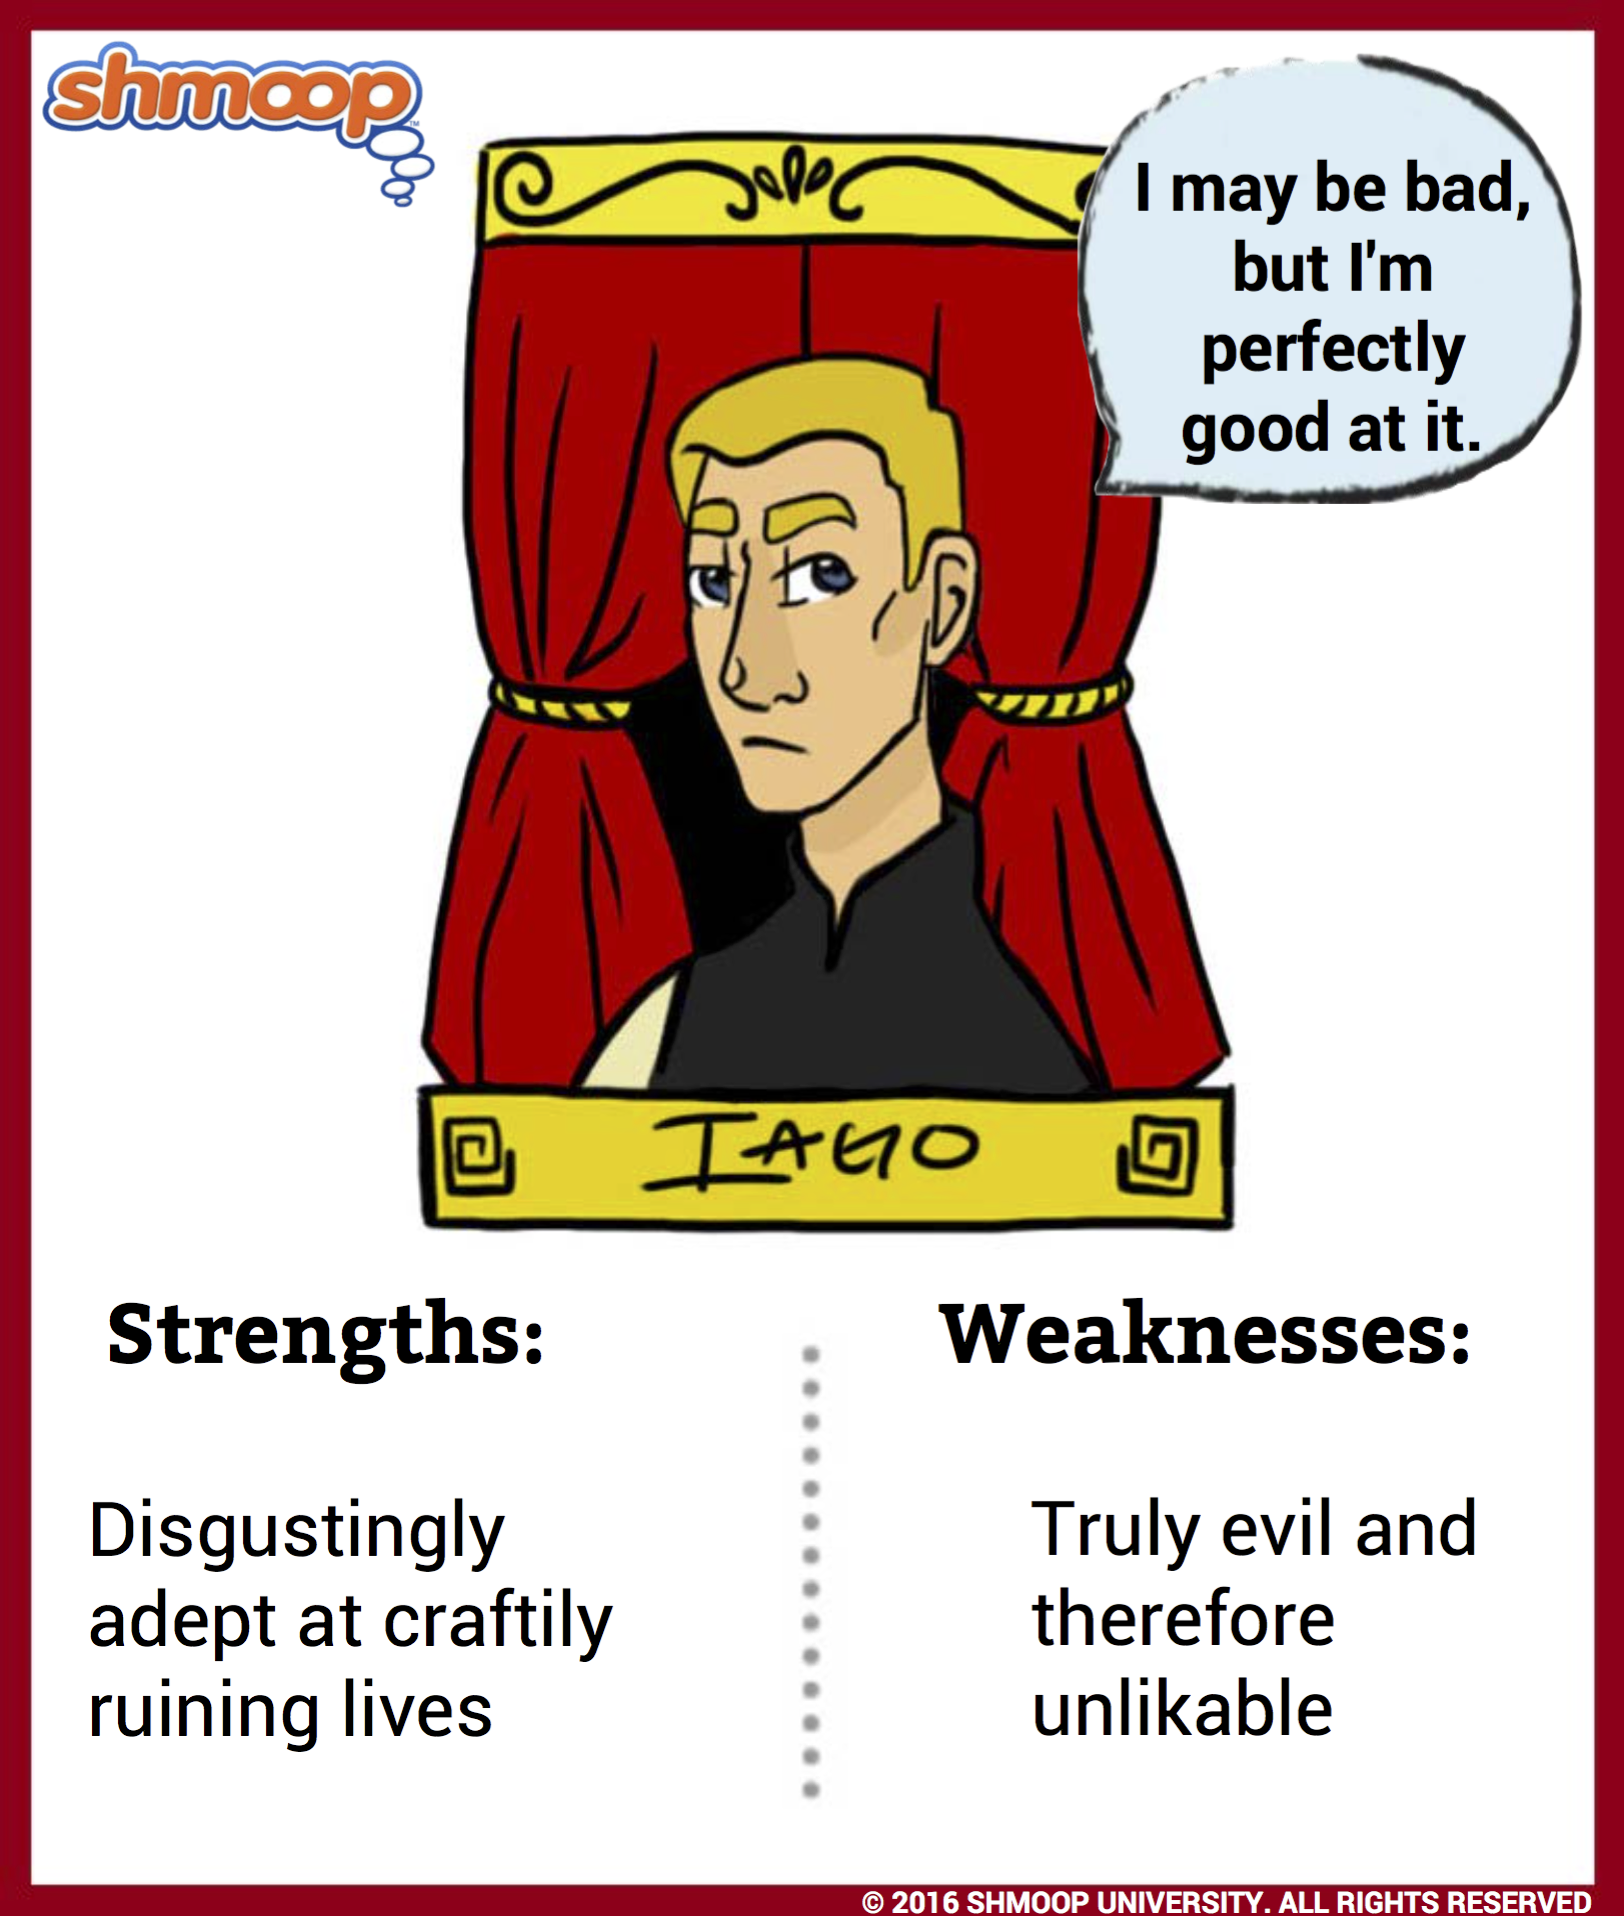 essay on the character of iago Shakespeare's play othello iago's strategic acts of character manipulation essay gr 11 english update this is my original essay here is a link to my edited.